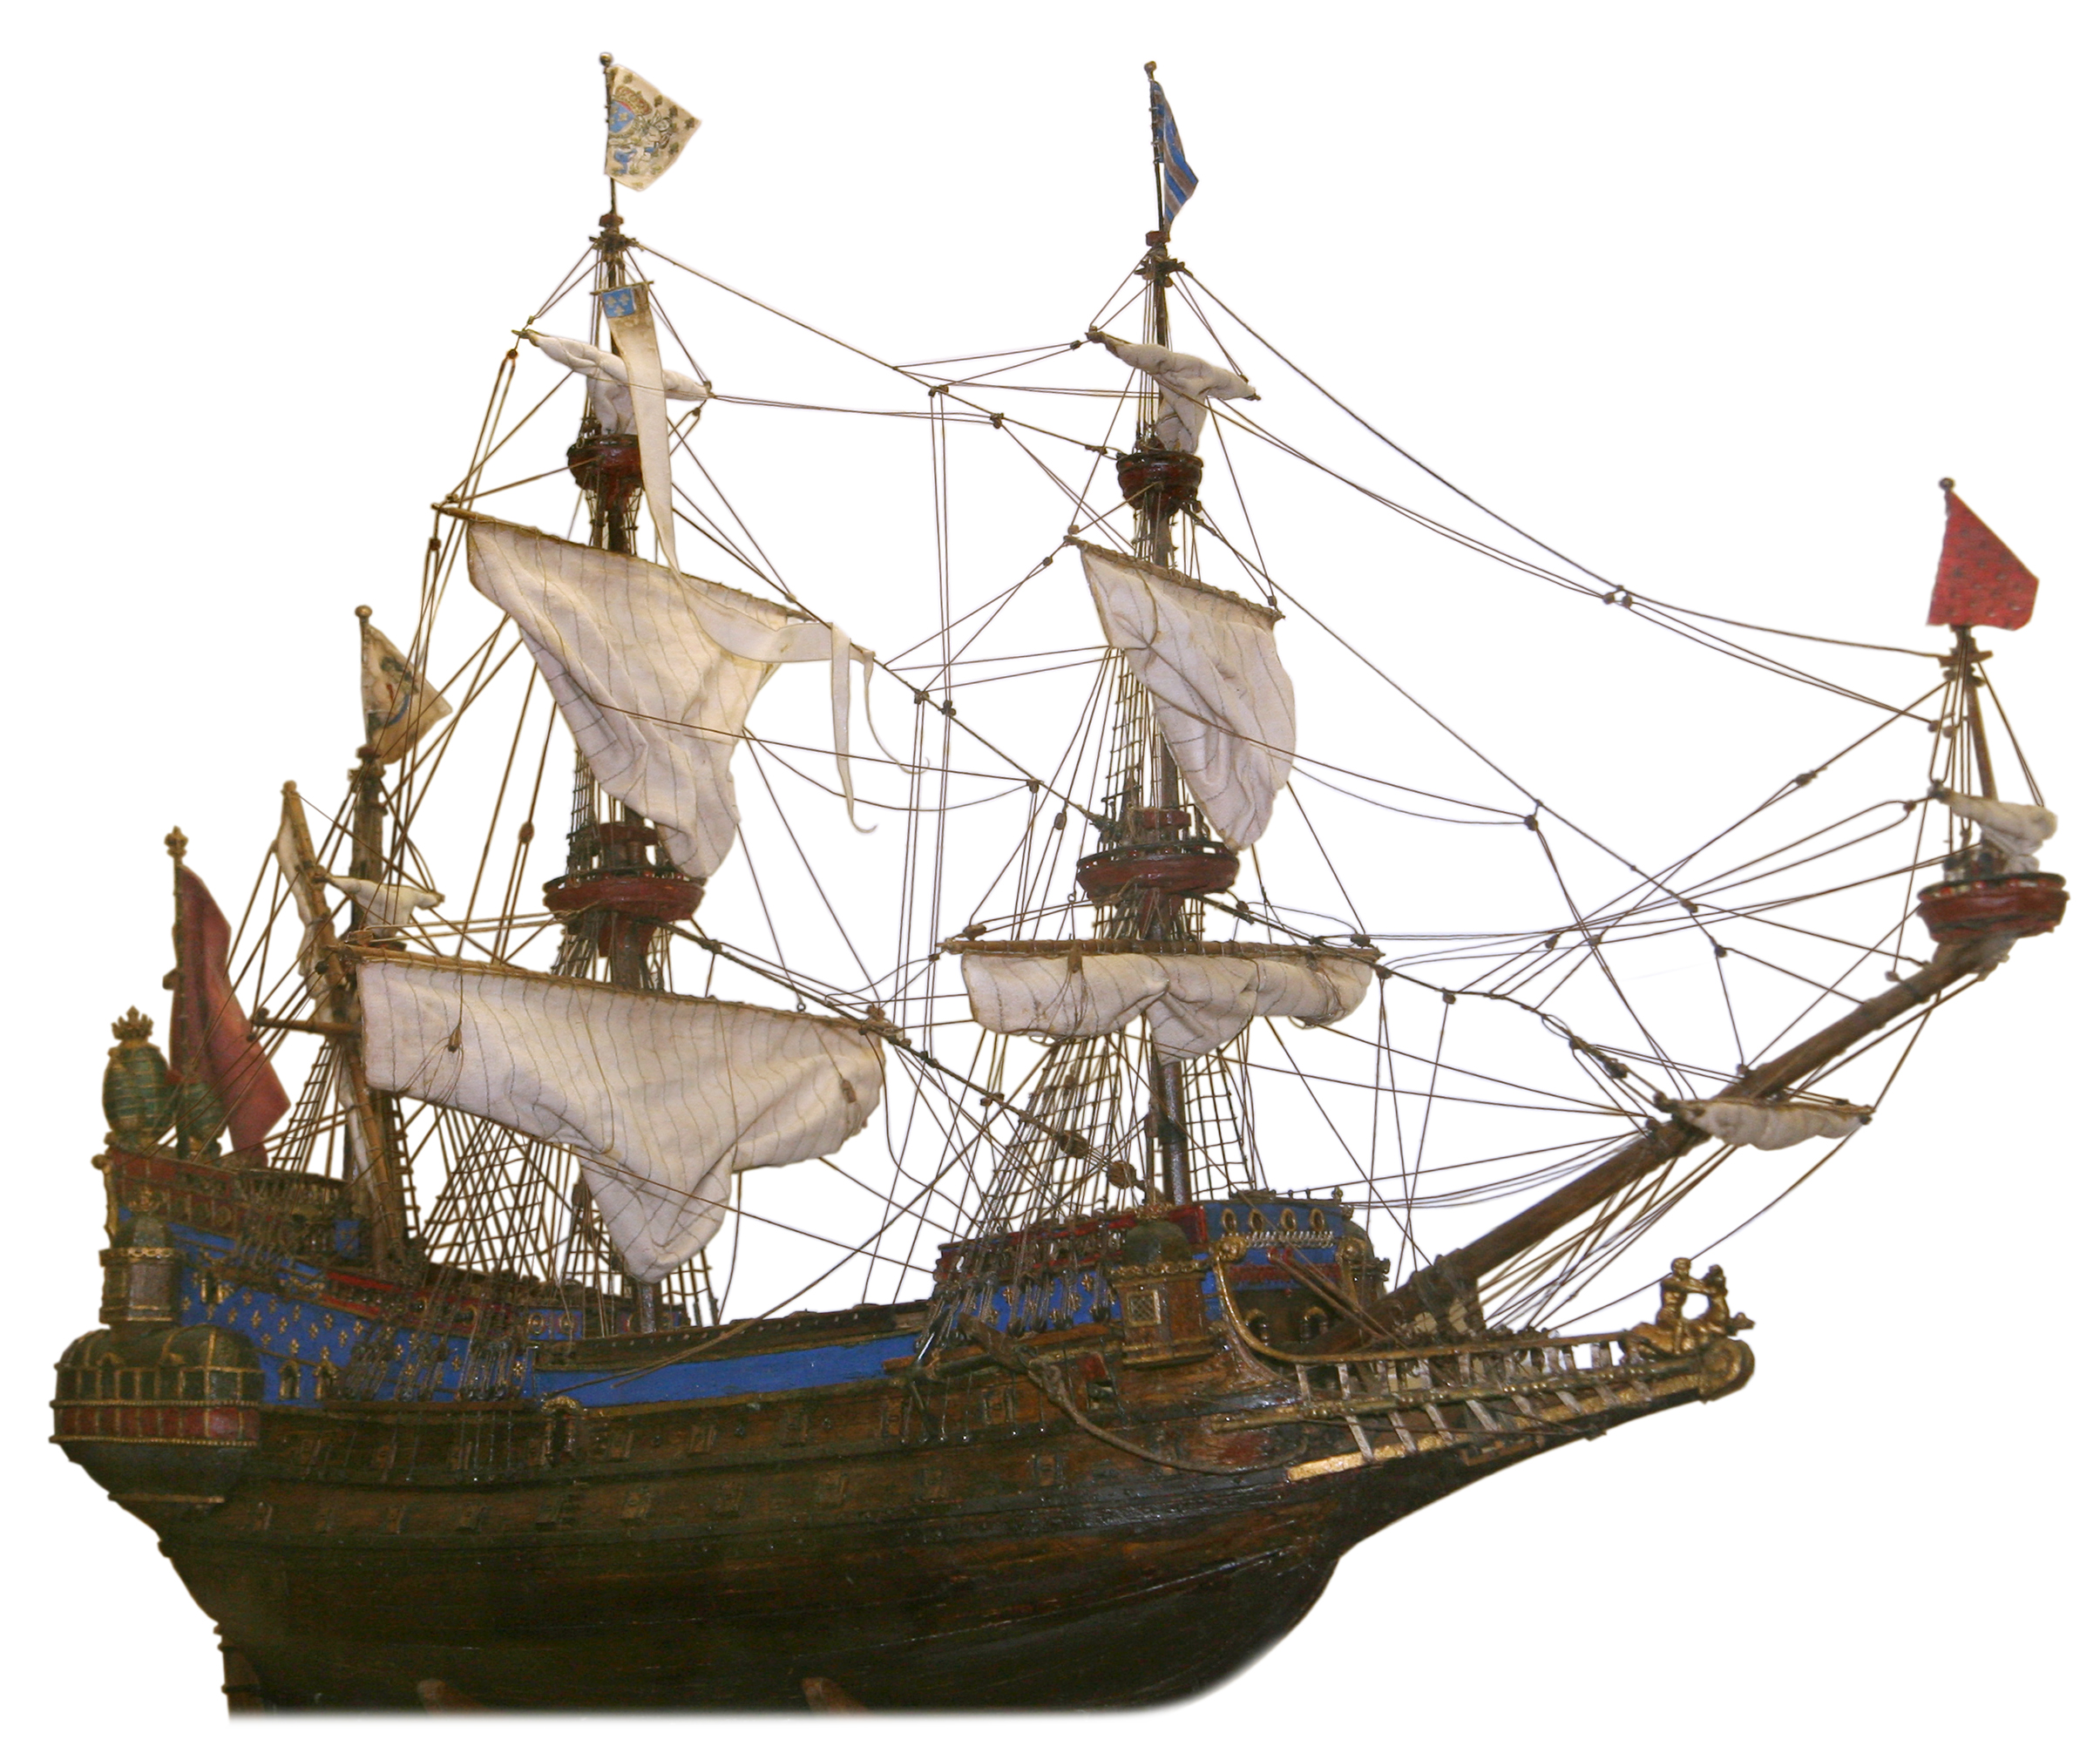 File:French galleon model.jpg - Wikimedia Commons